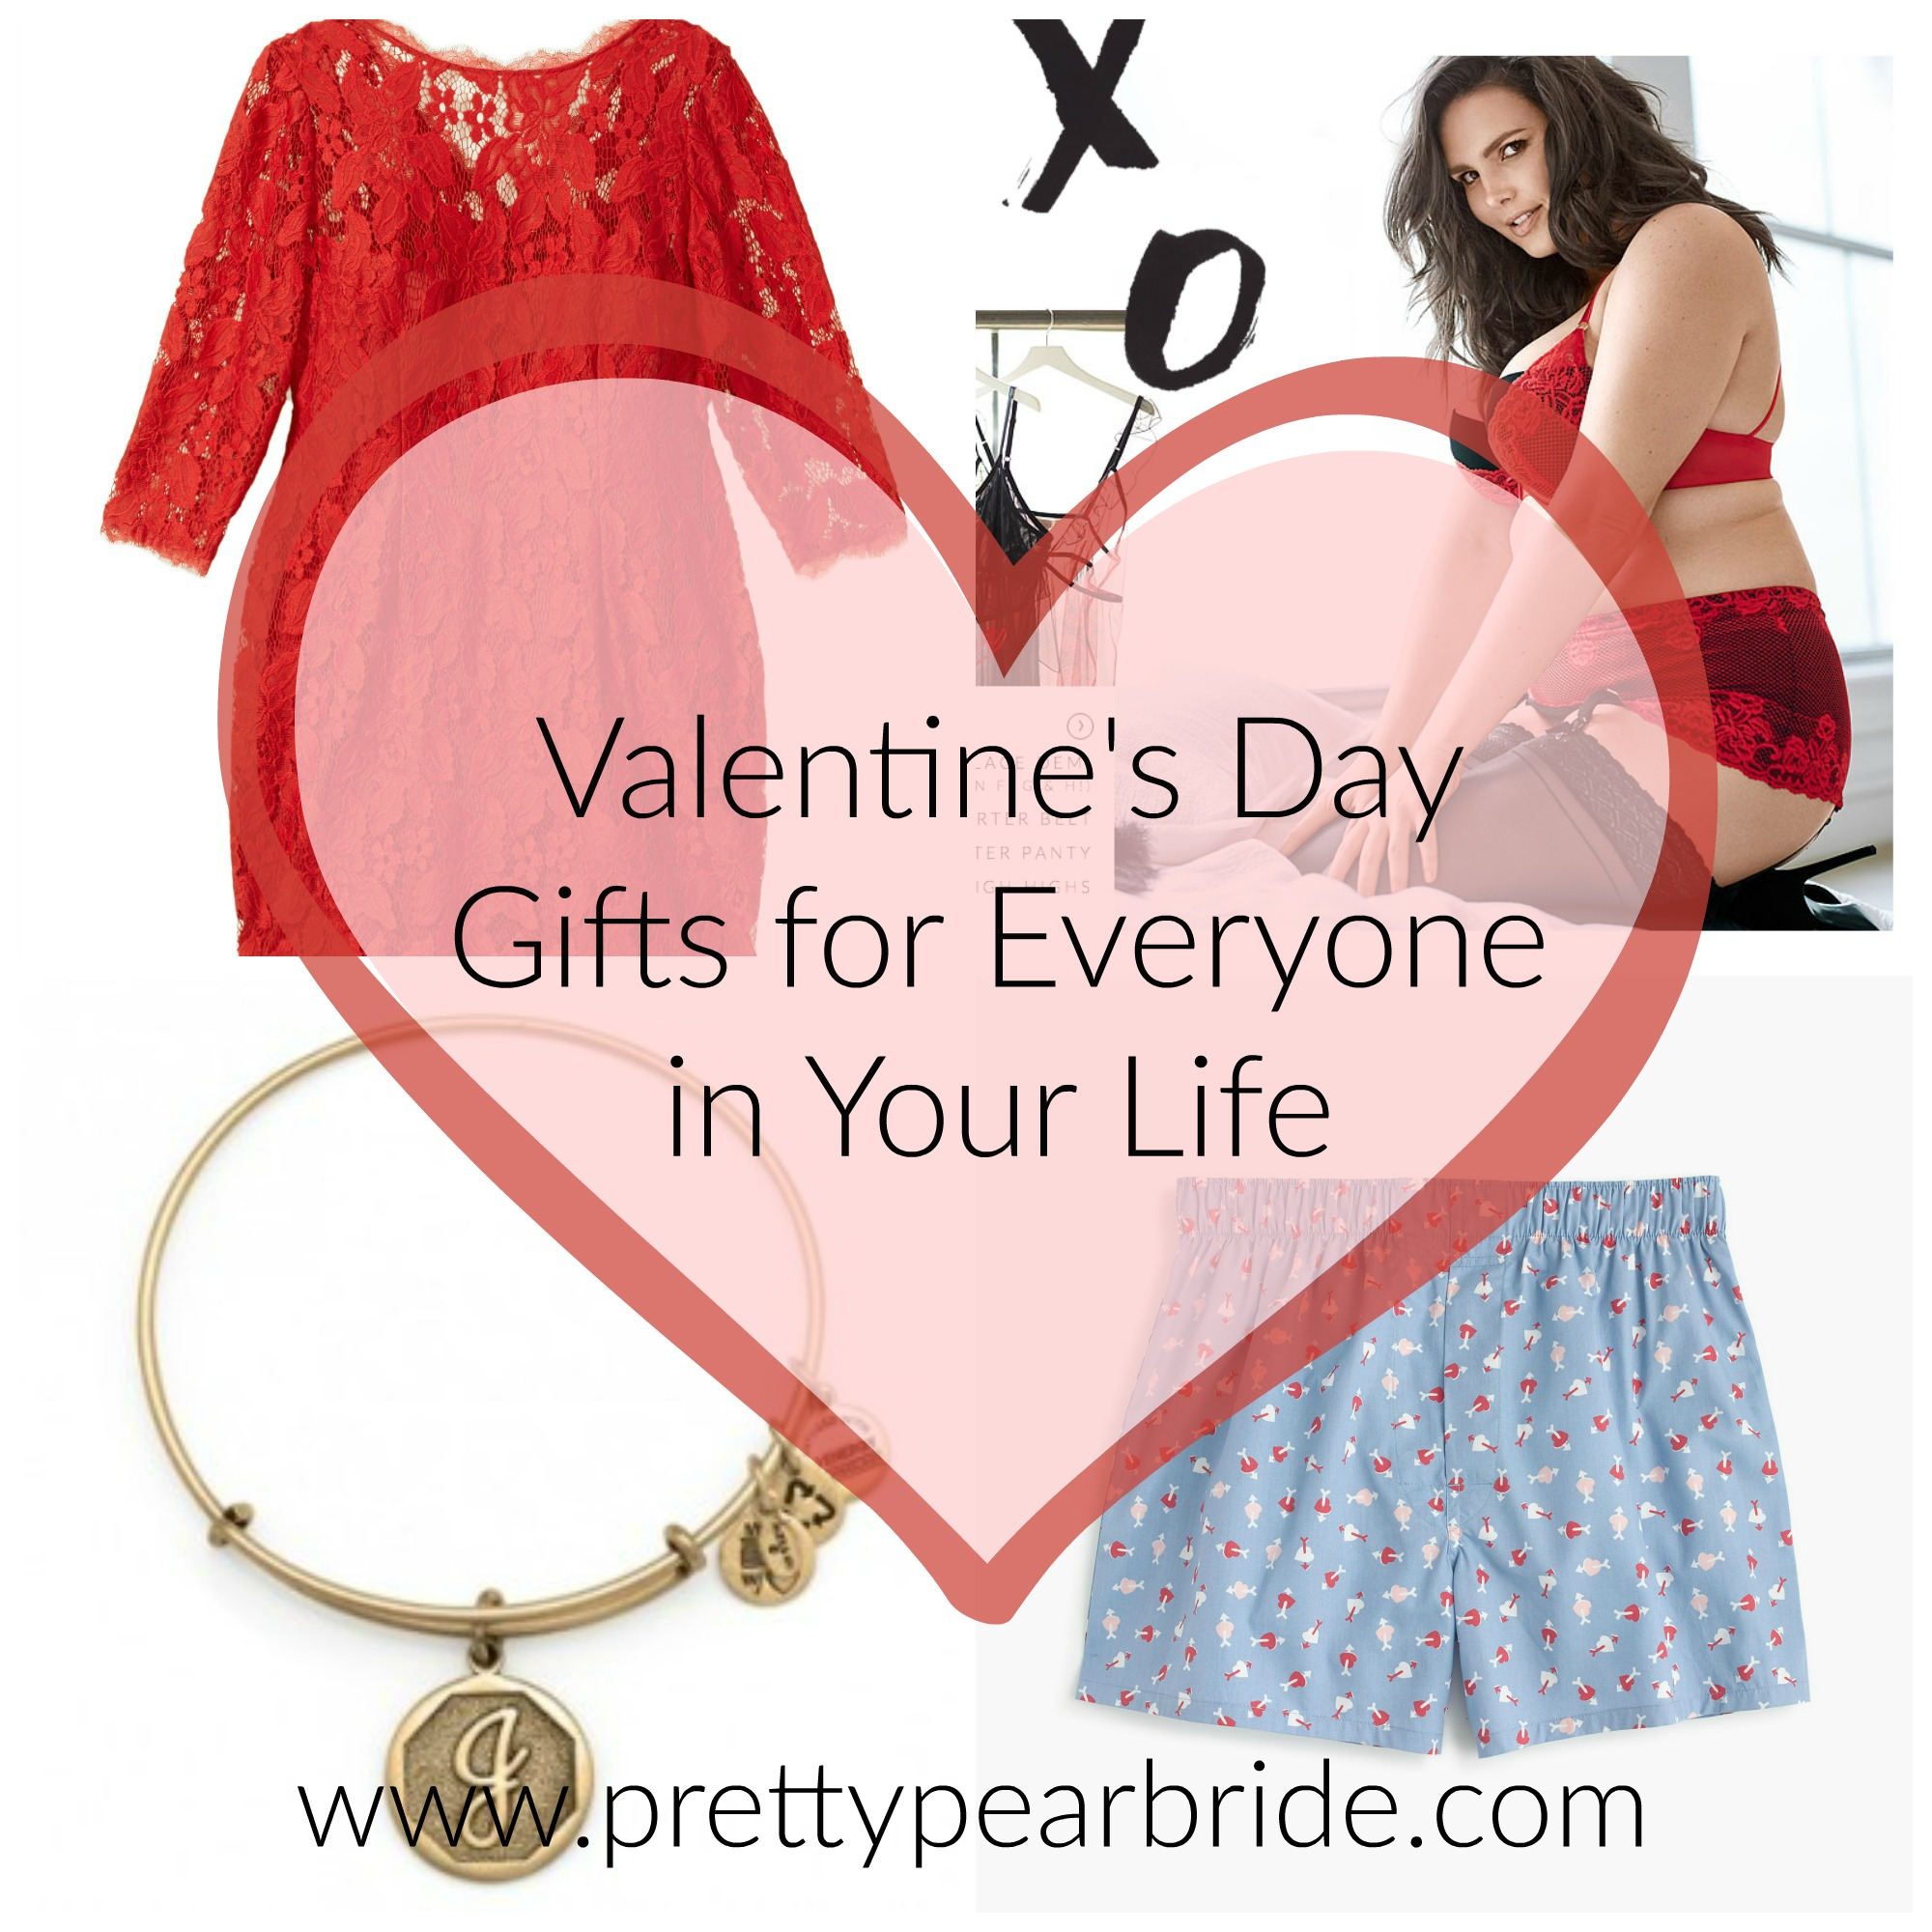 Valentine's Day Gift Ideas for Everyone in Your Life | Pretty Pear Bride